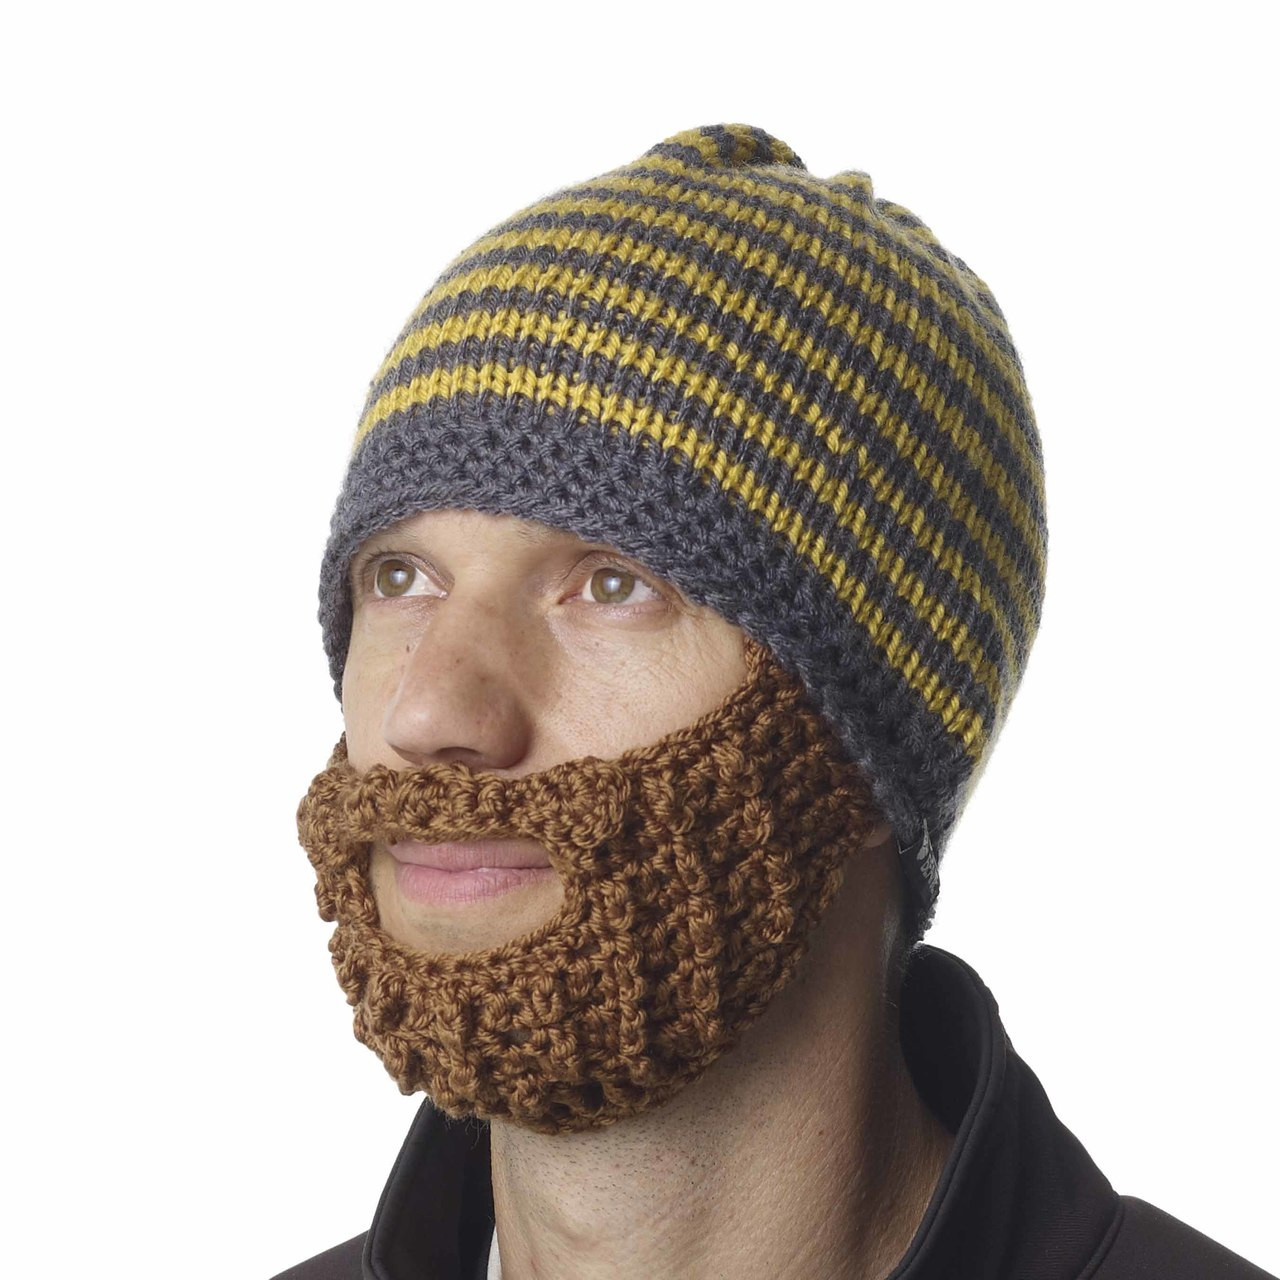 997692926d8 ... The Original Beard Beanie™ Yellow Striped 100% Hand Made. Image 1